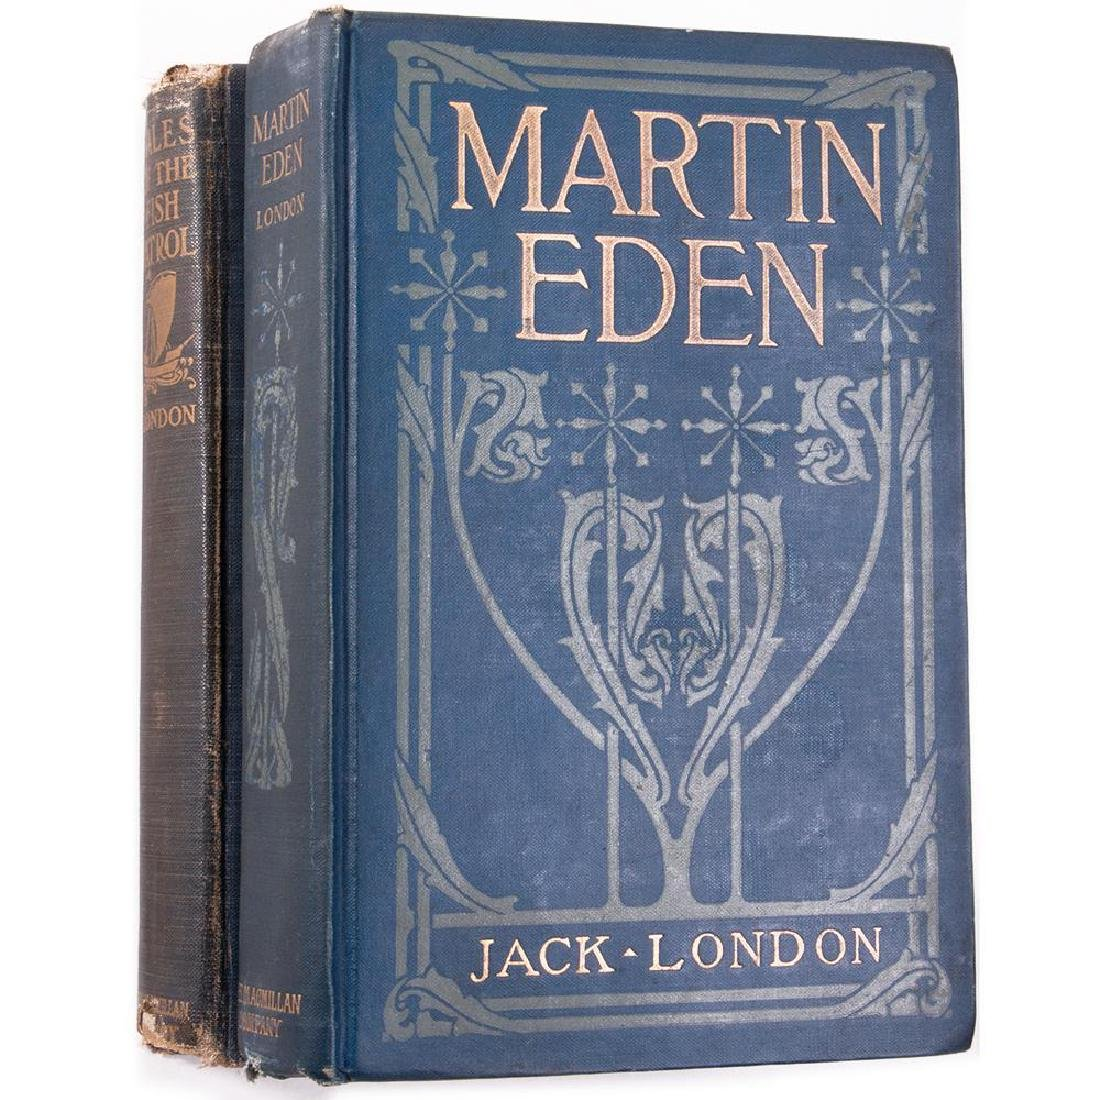 Two works by Jack London. First edition